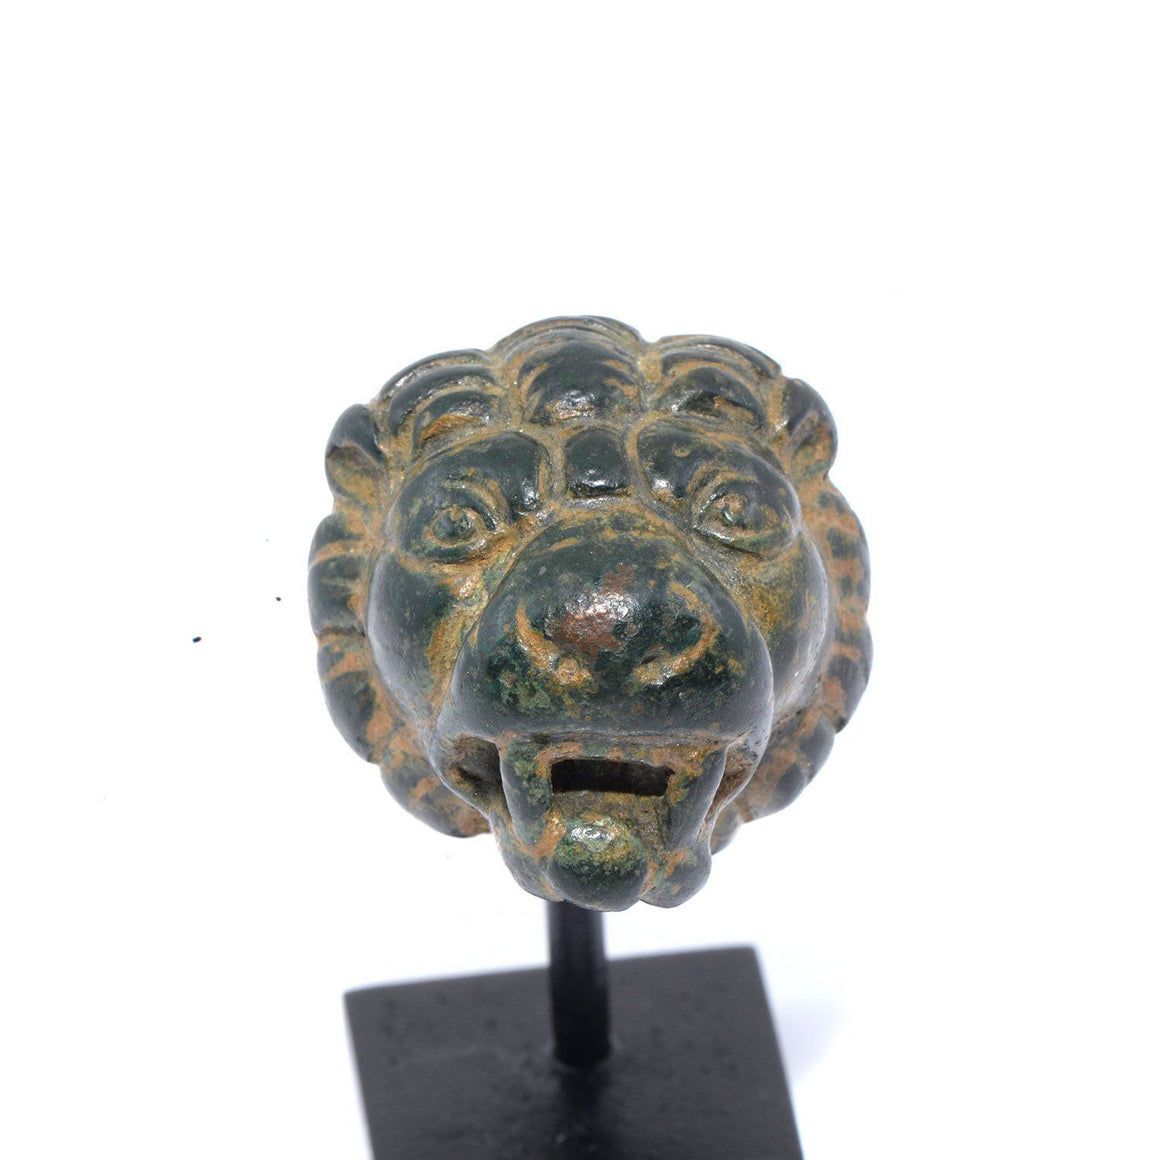 A Roman Bronze Lion Head Whetstone Handle, Roman Imperial Period, ca. 1st century CE - Sands of Time Ancient Art